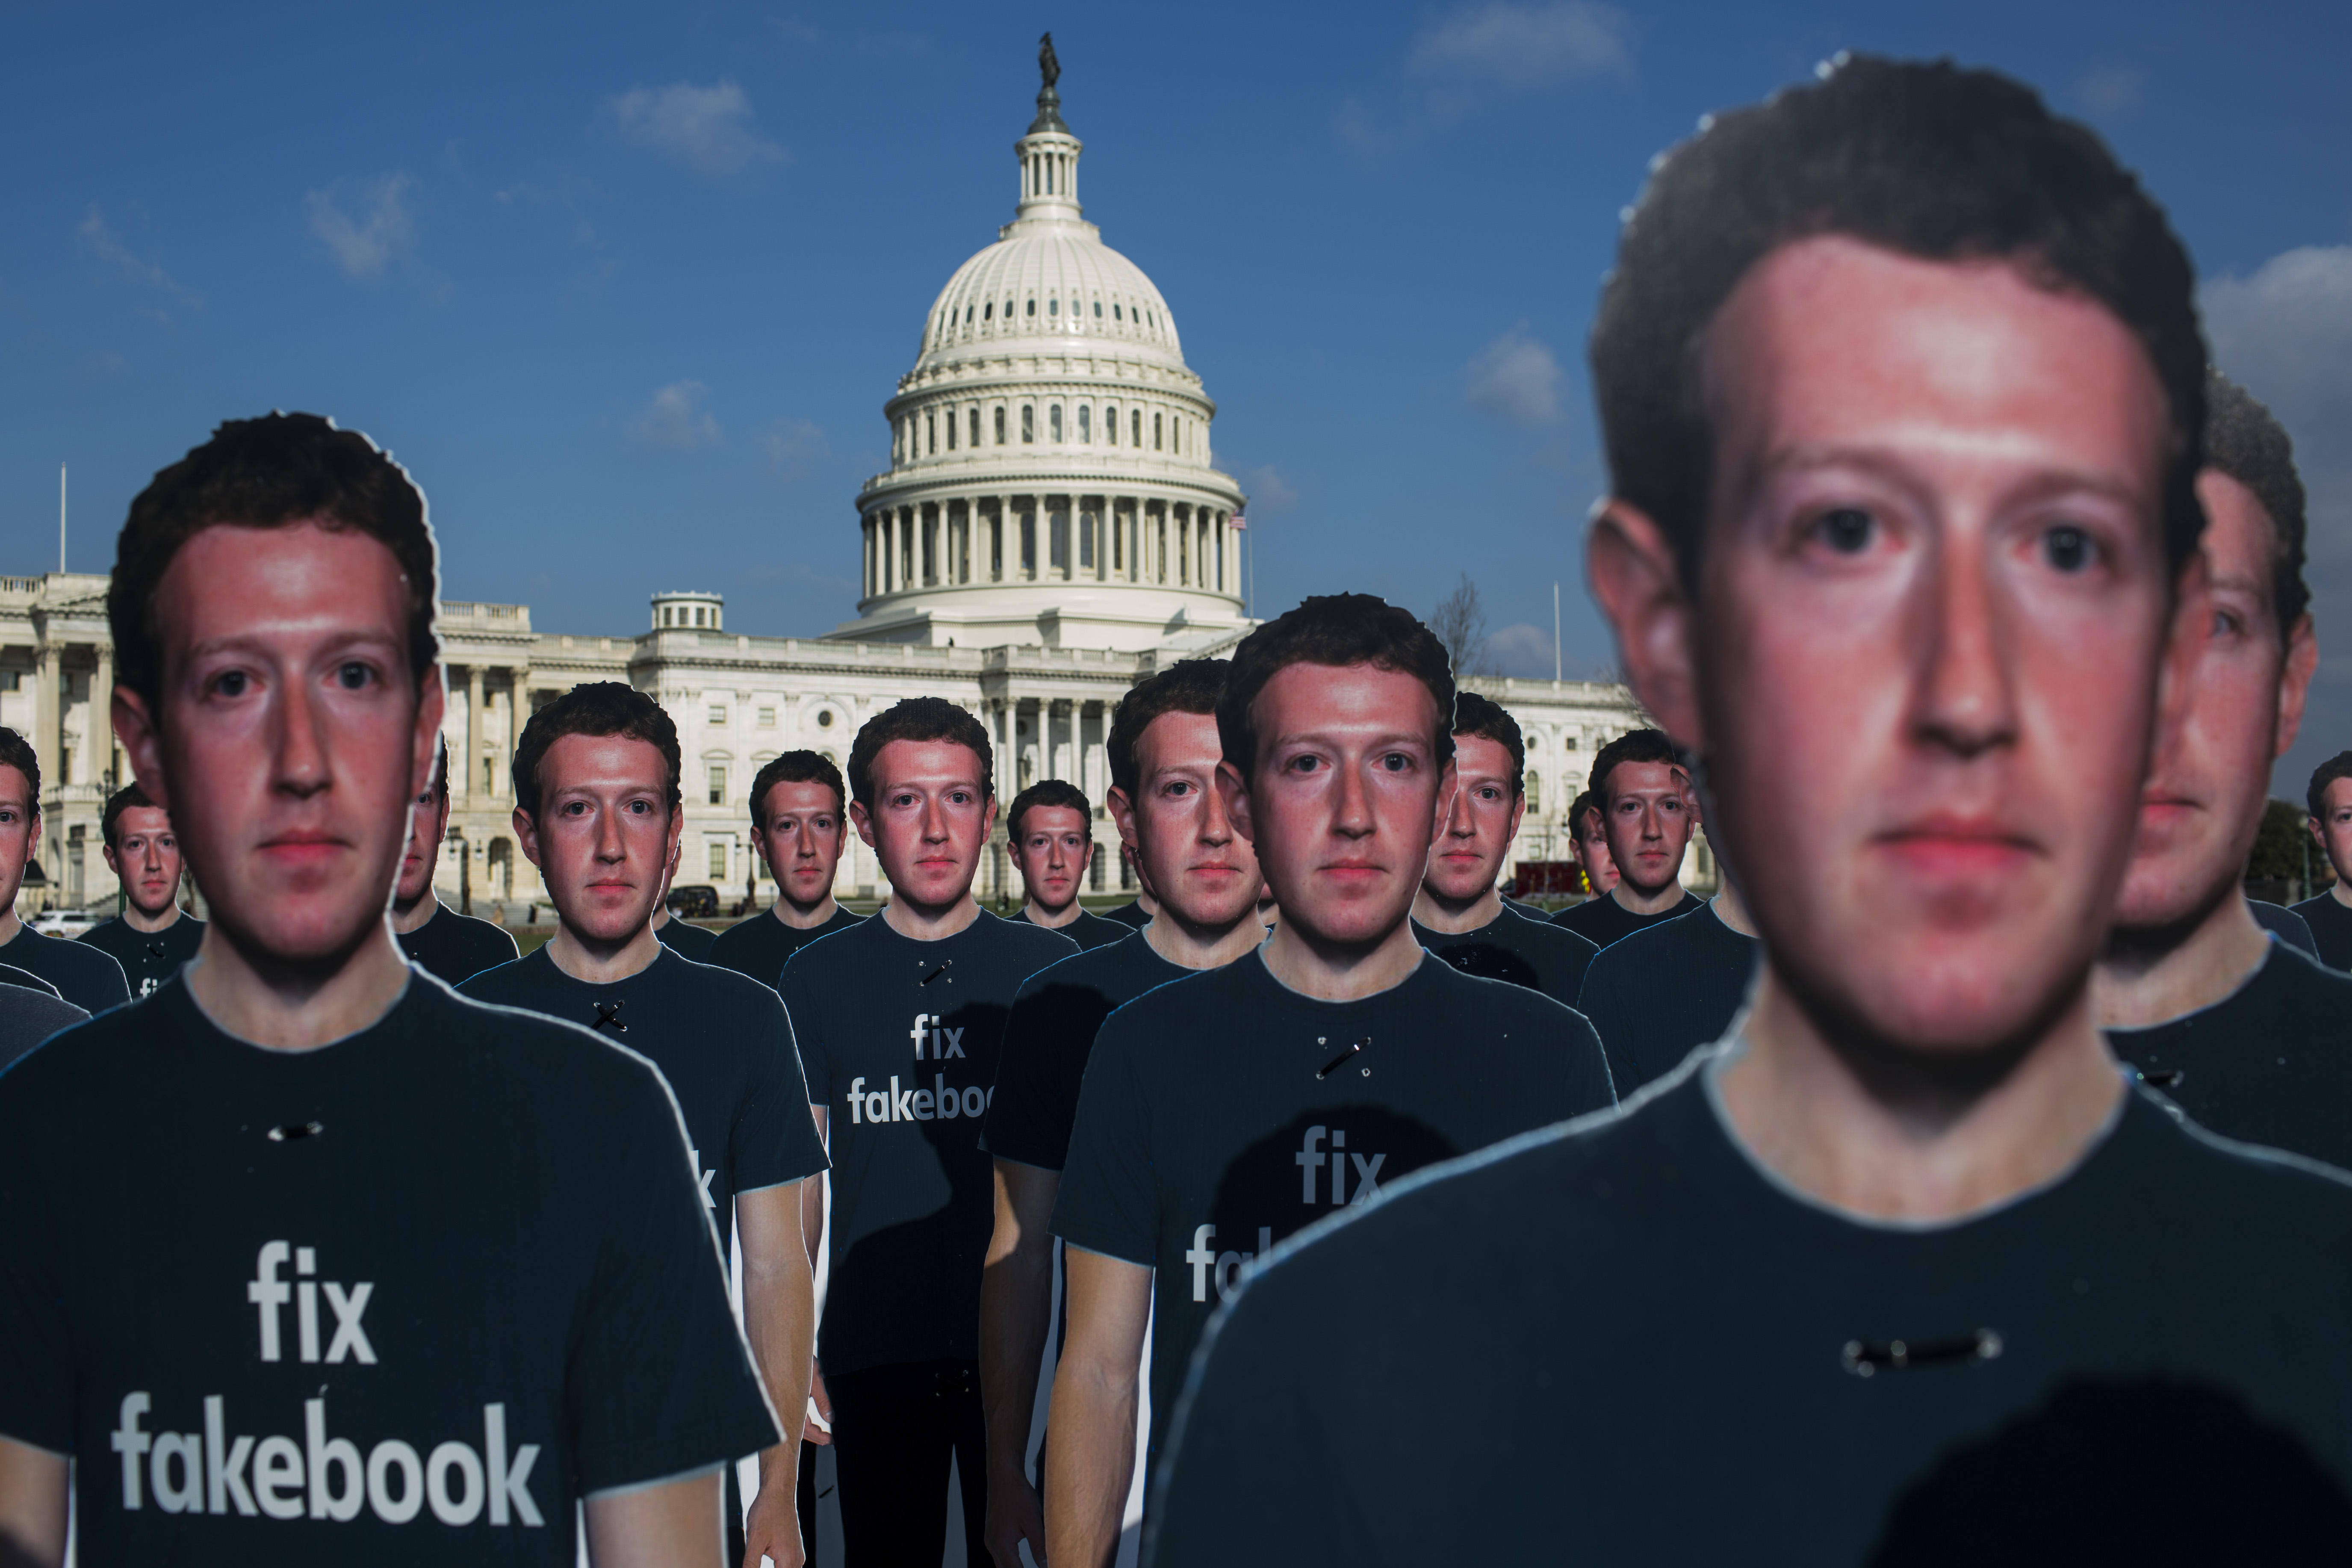 Cutouts of Facebook CEO Mark Zuckerberg in front of the US Capitol building.